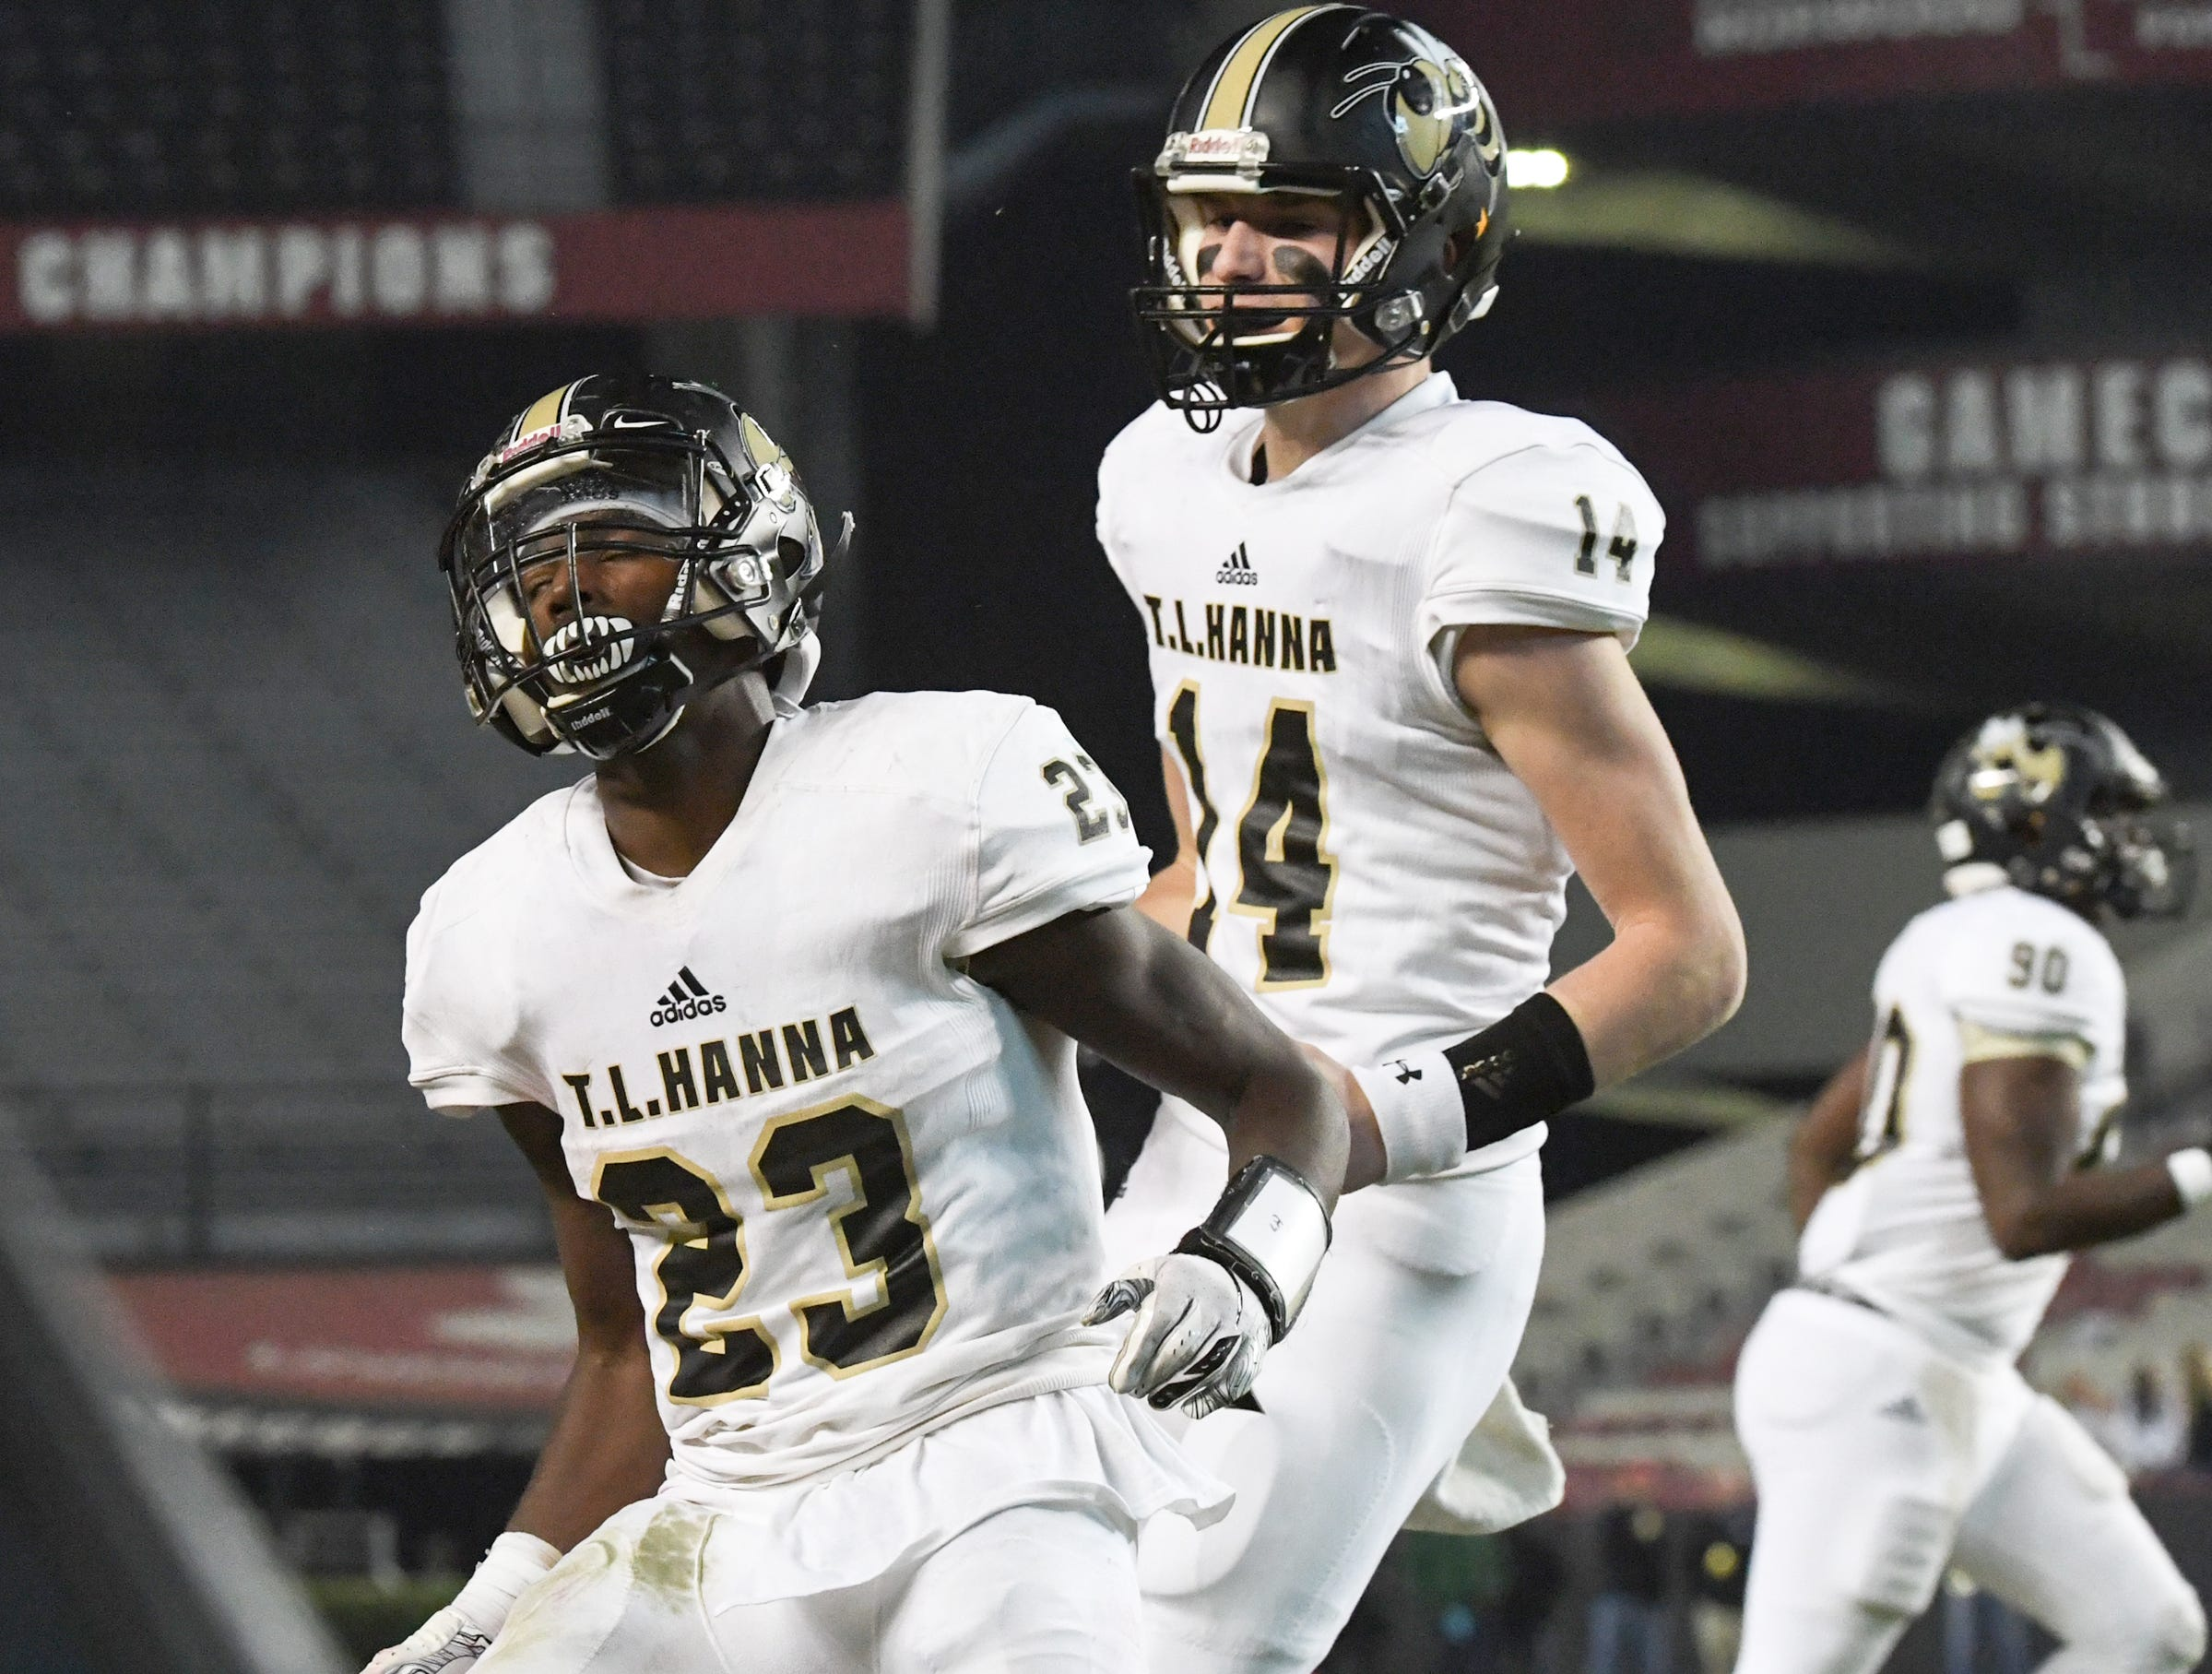 TL Hanna senior Isaiah Norris (23) celebrates an eight-yard touchdown against Dutch Fork during the second quarter of the Class AAAAA state championship game at Williams-Brice Stadium in Columbia Saturday, December 8, 2018.